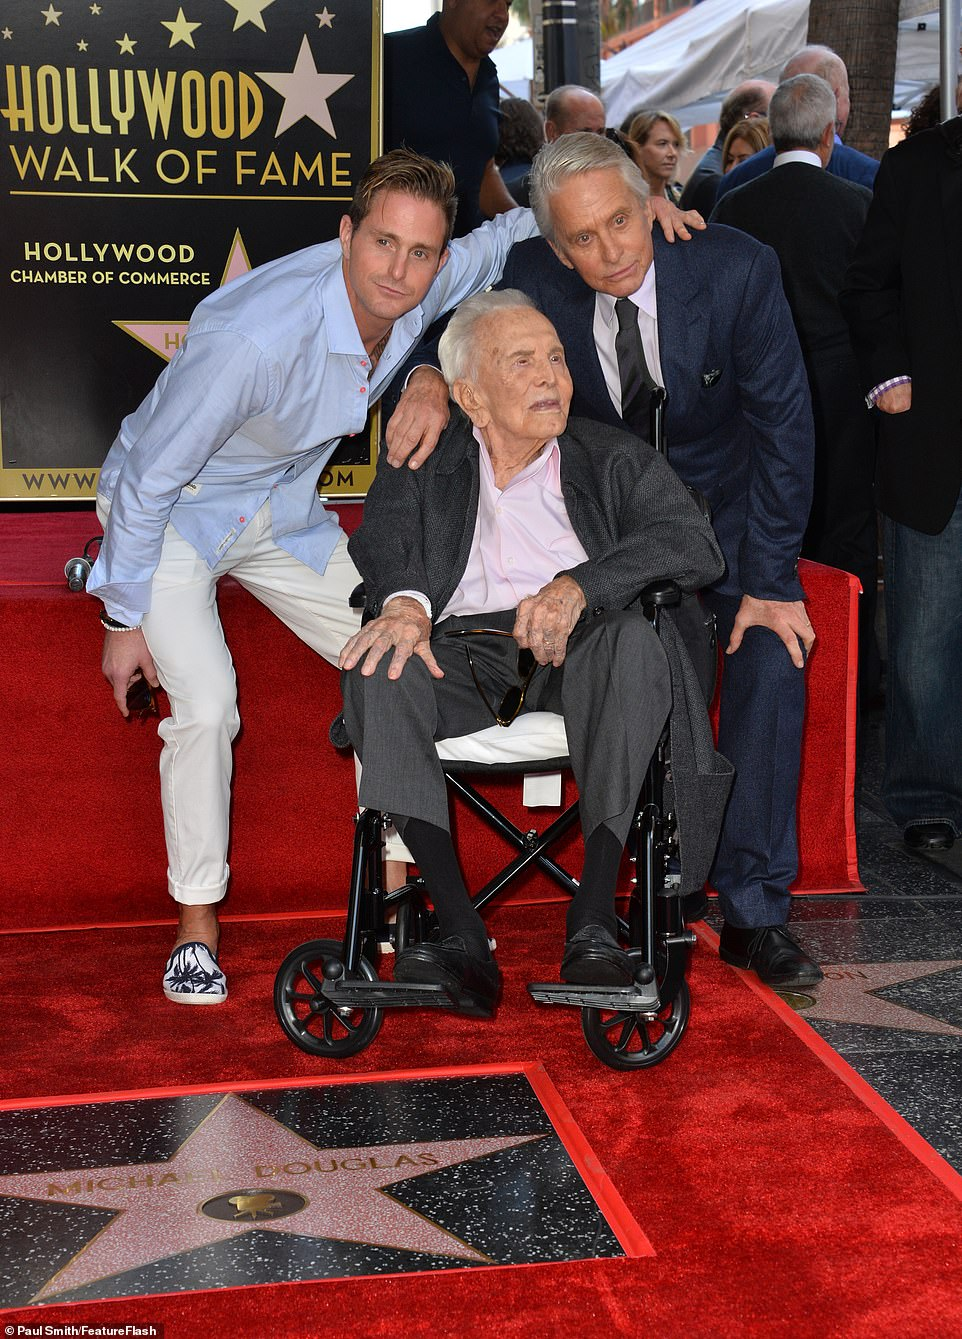 Sharing the day with his loved ones: Cameron put an affectionate arm around his dad as they shared a snap with acting legend Kirk in front of his star